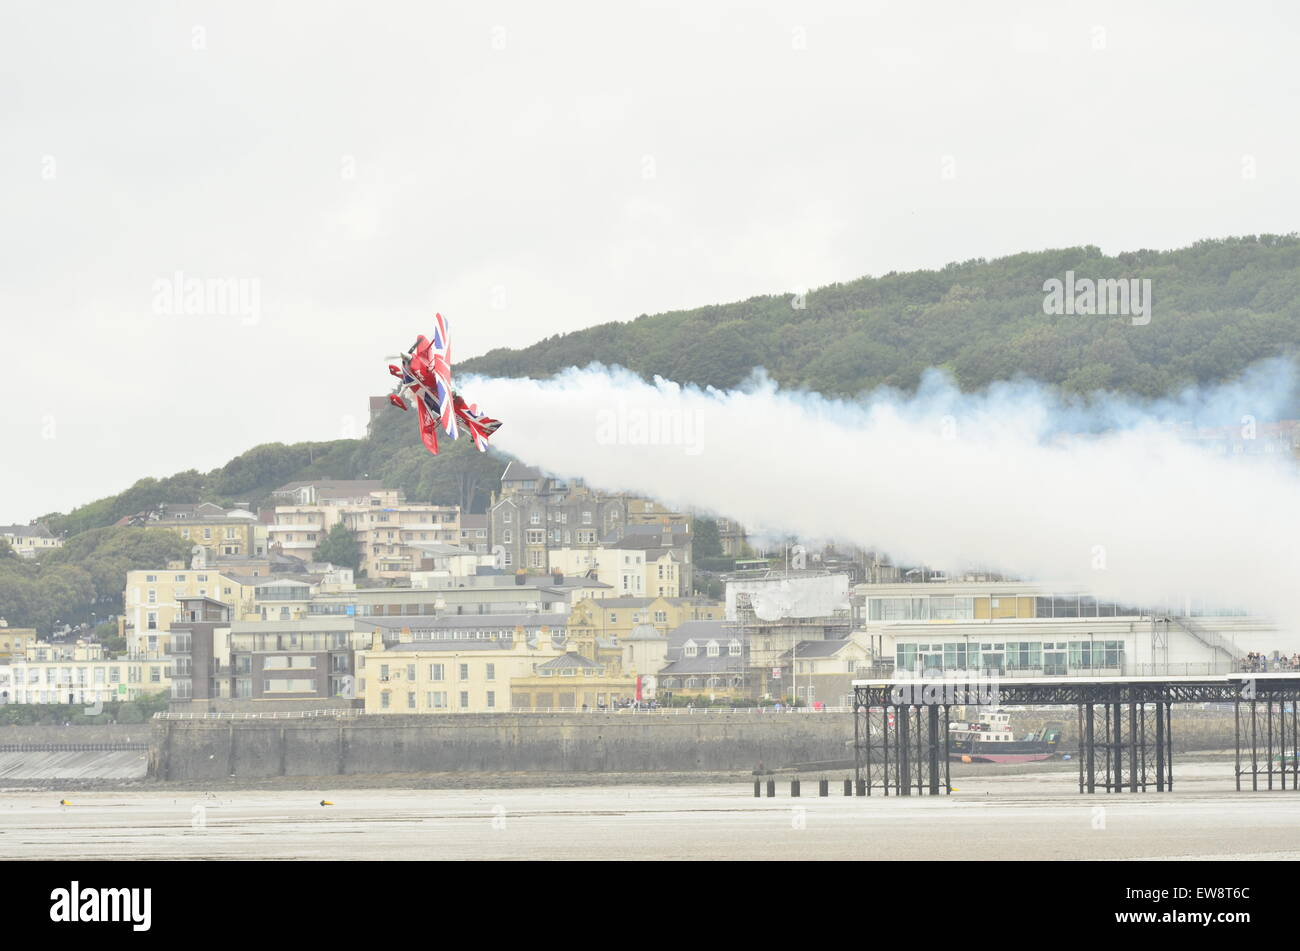 Weston-Super-Mare, UK. 20th June, 2015. Air show Weston-Super-Mare seafront a Display by Muscle biplane Raging Rhino - Stock Image